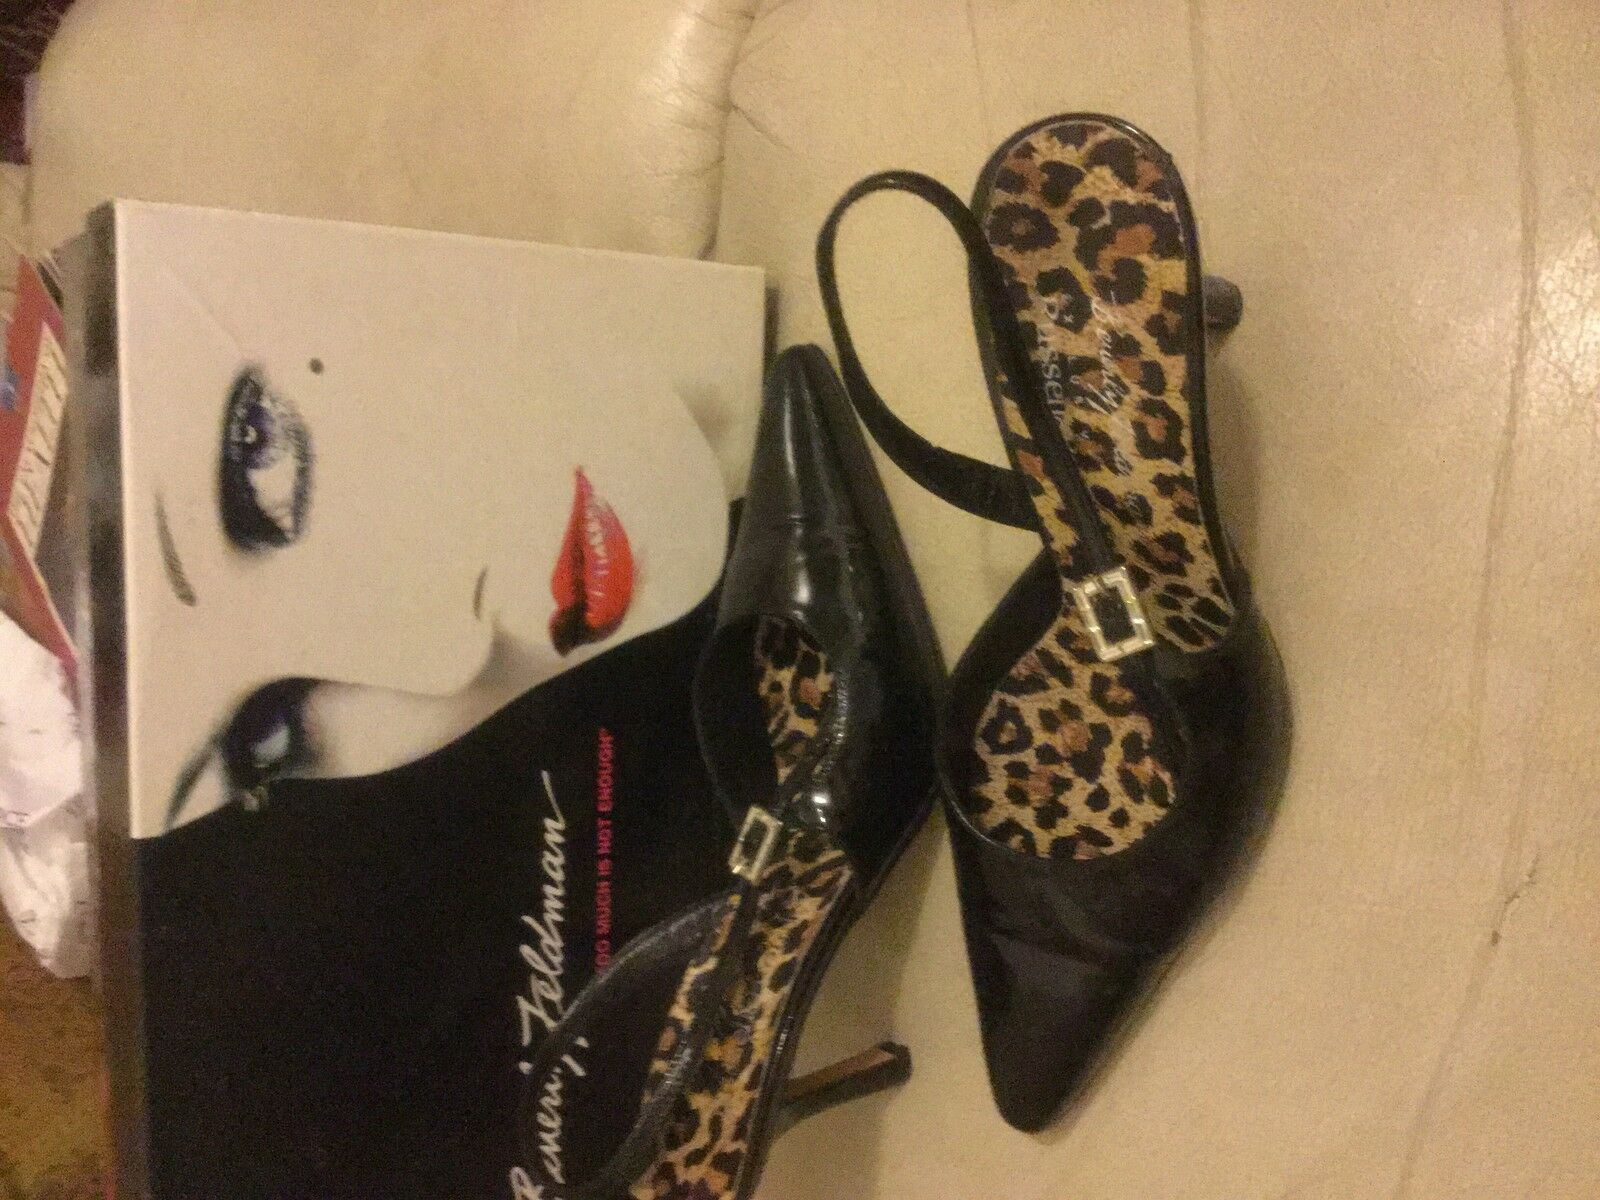 Descuento barato Beverly Feldman for Russell & Bromley Black Patent Slingbacks Shoes